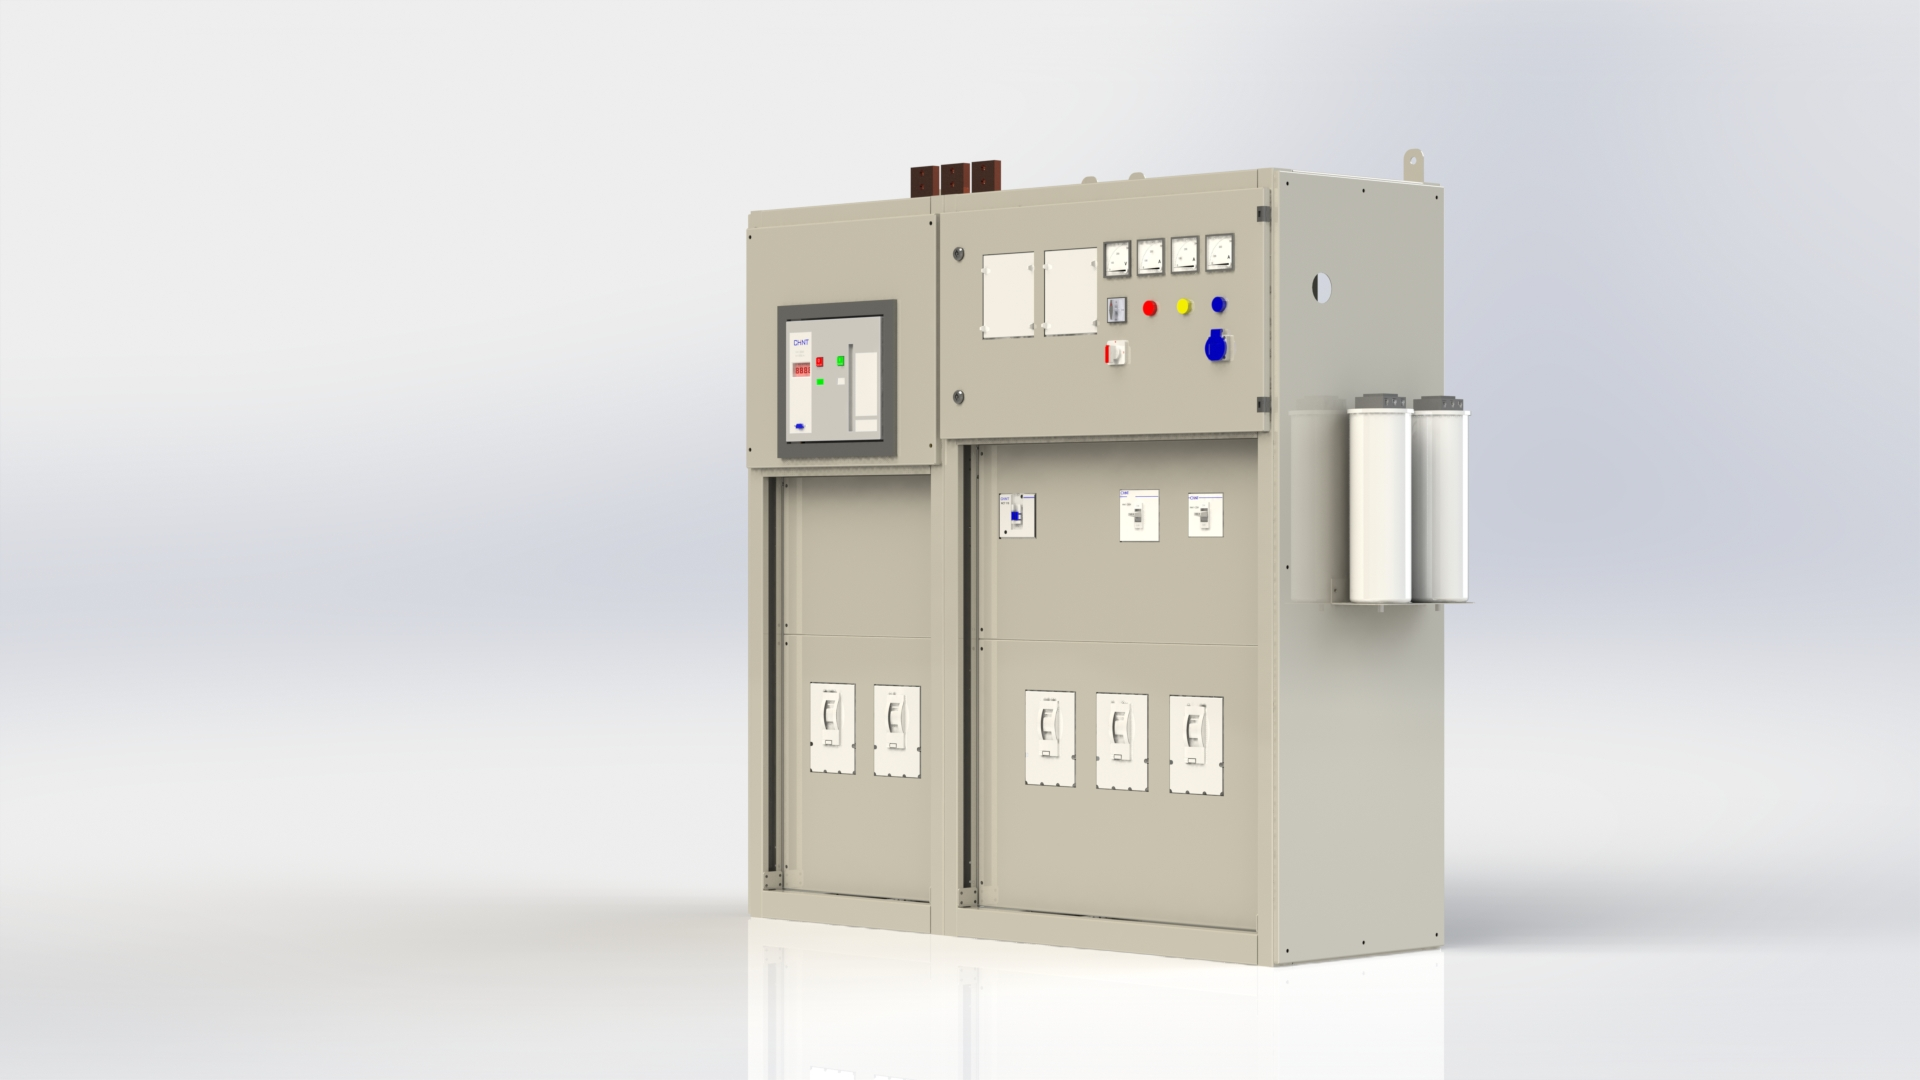 LPK-Low Voltage Panel For Kiosk